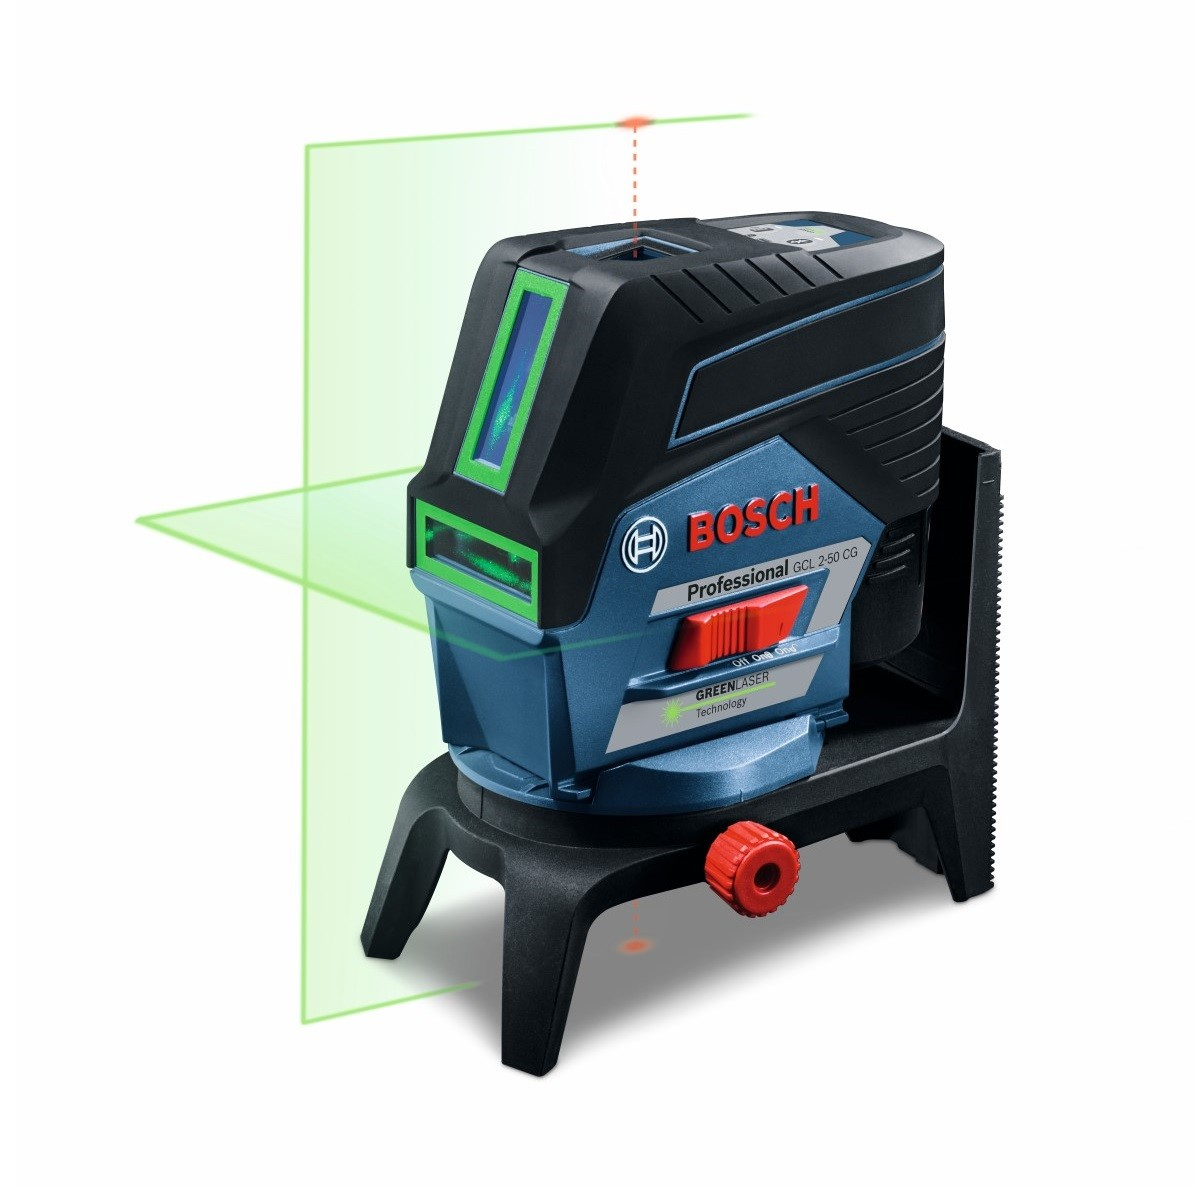 bosch gcl 2 50 cg green beam combi laser rm2 wall mount inc 1x 2 0ah batt 0601066h70. Black Bedroom Furniture Sets. Home Design Ideas